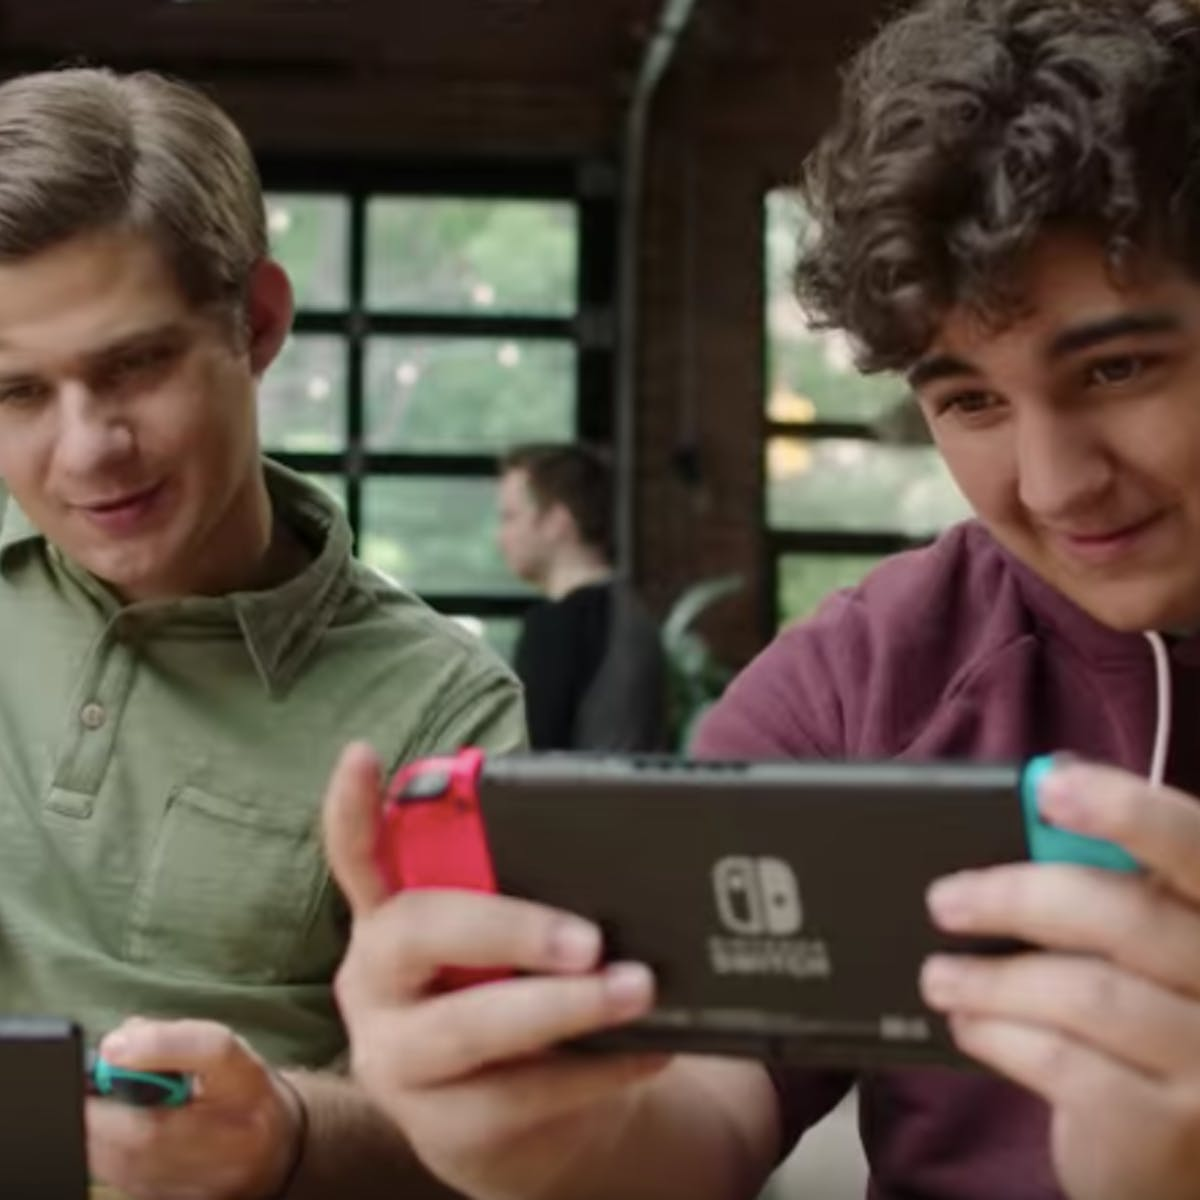 Fortnite' Switch Crossplay: Why Can't PlayStation 4 Players